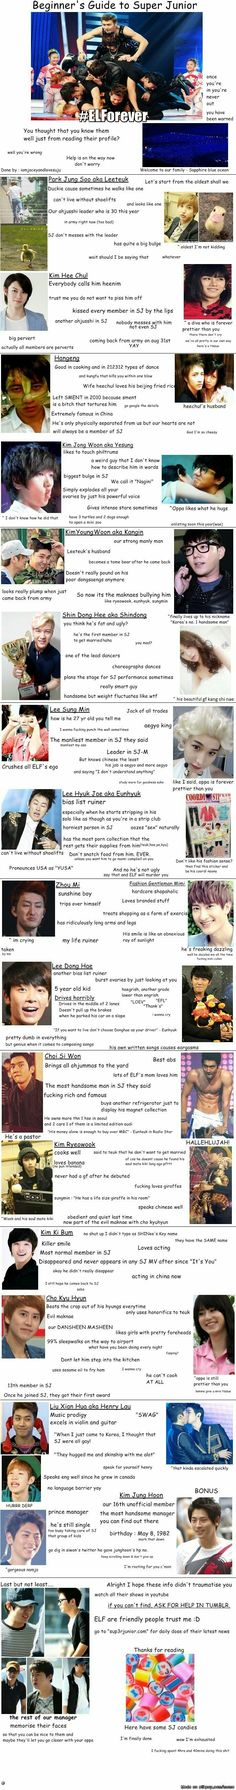 Beginner's Guide to Super Junior ☺  { #Guide #BeginnersGuidetoSuperJunior #SuperJunior #SUJU #ELF #EverLastingFriend #SMEntertainment #Kpop #KpopFunny #KpopMeme }